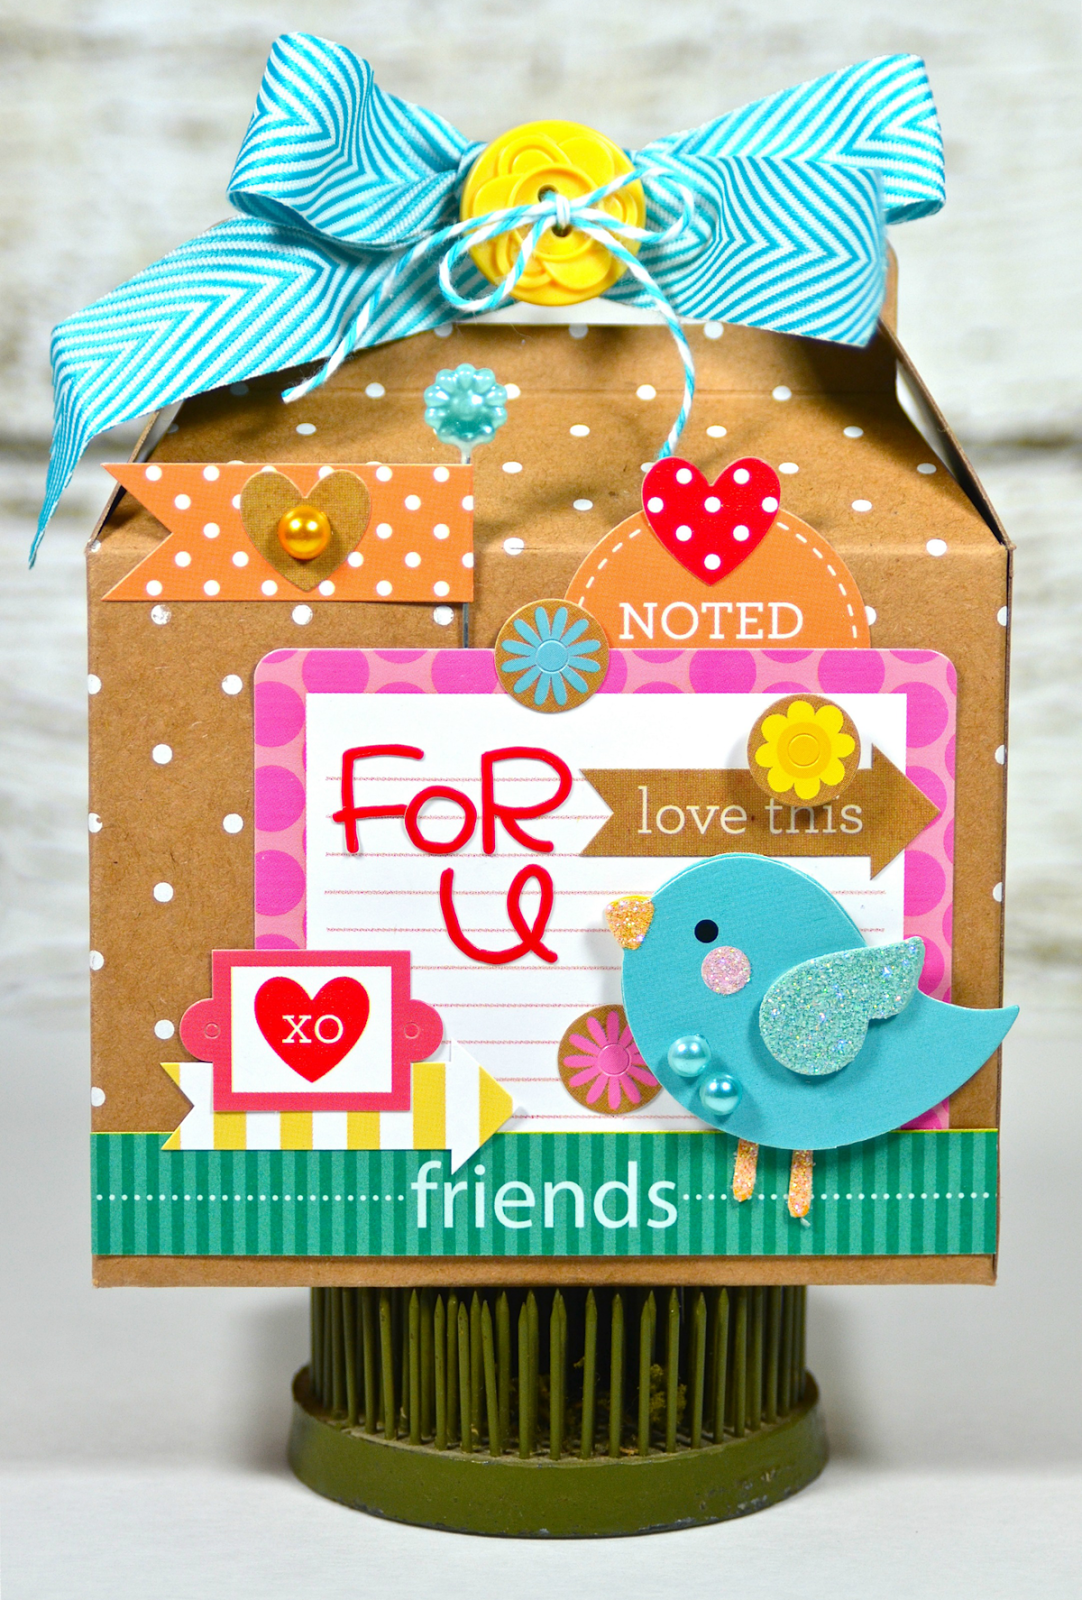 Altered project gift box designed by lisa swift featuring brittney